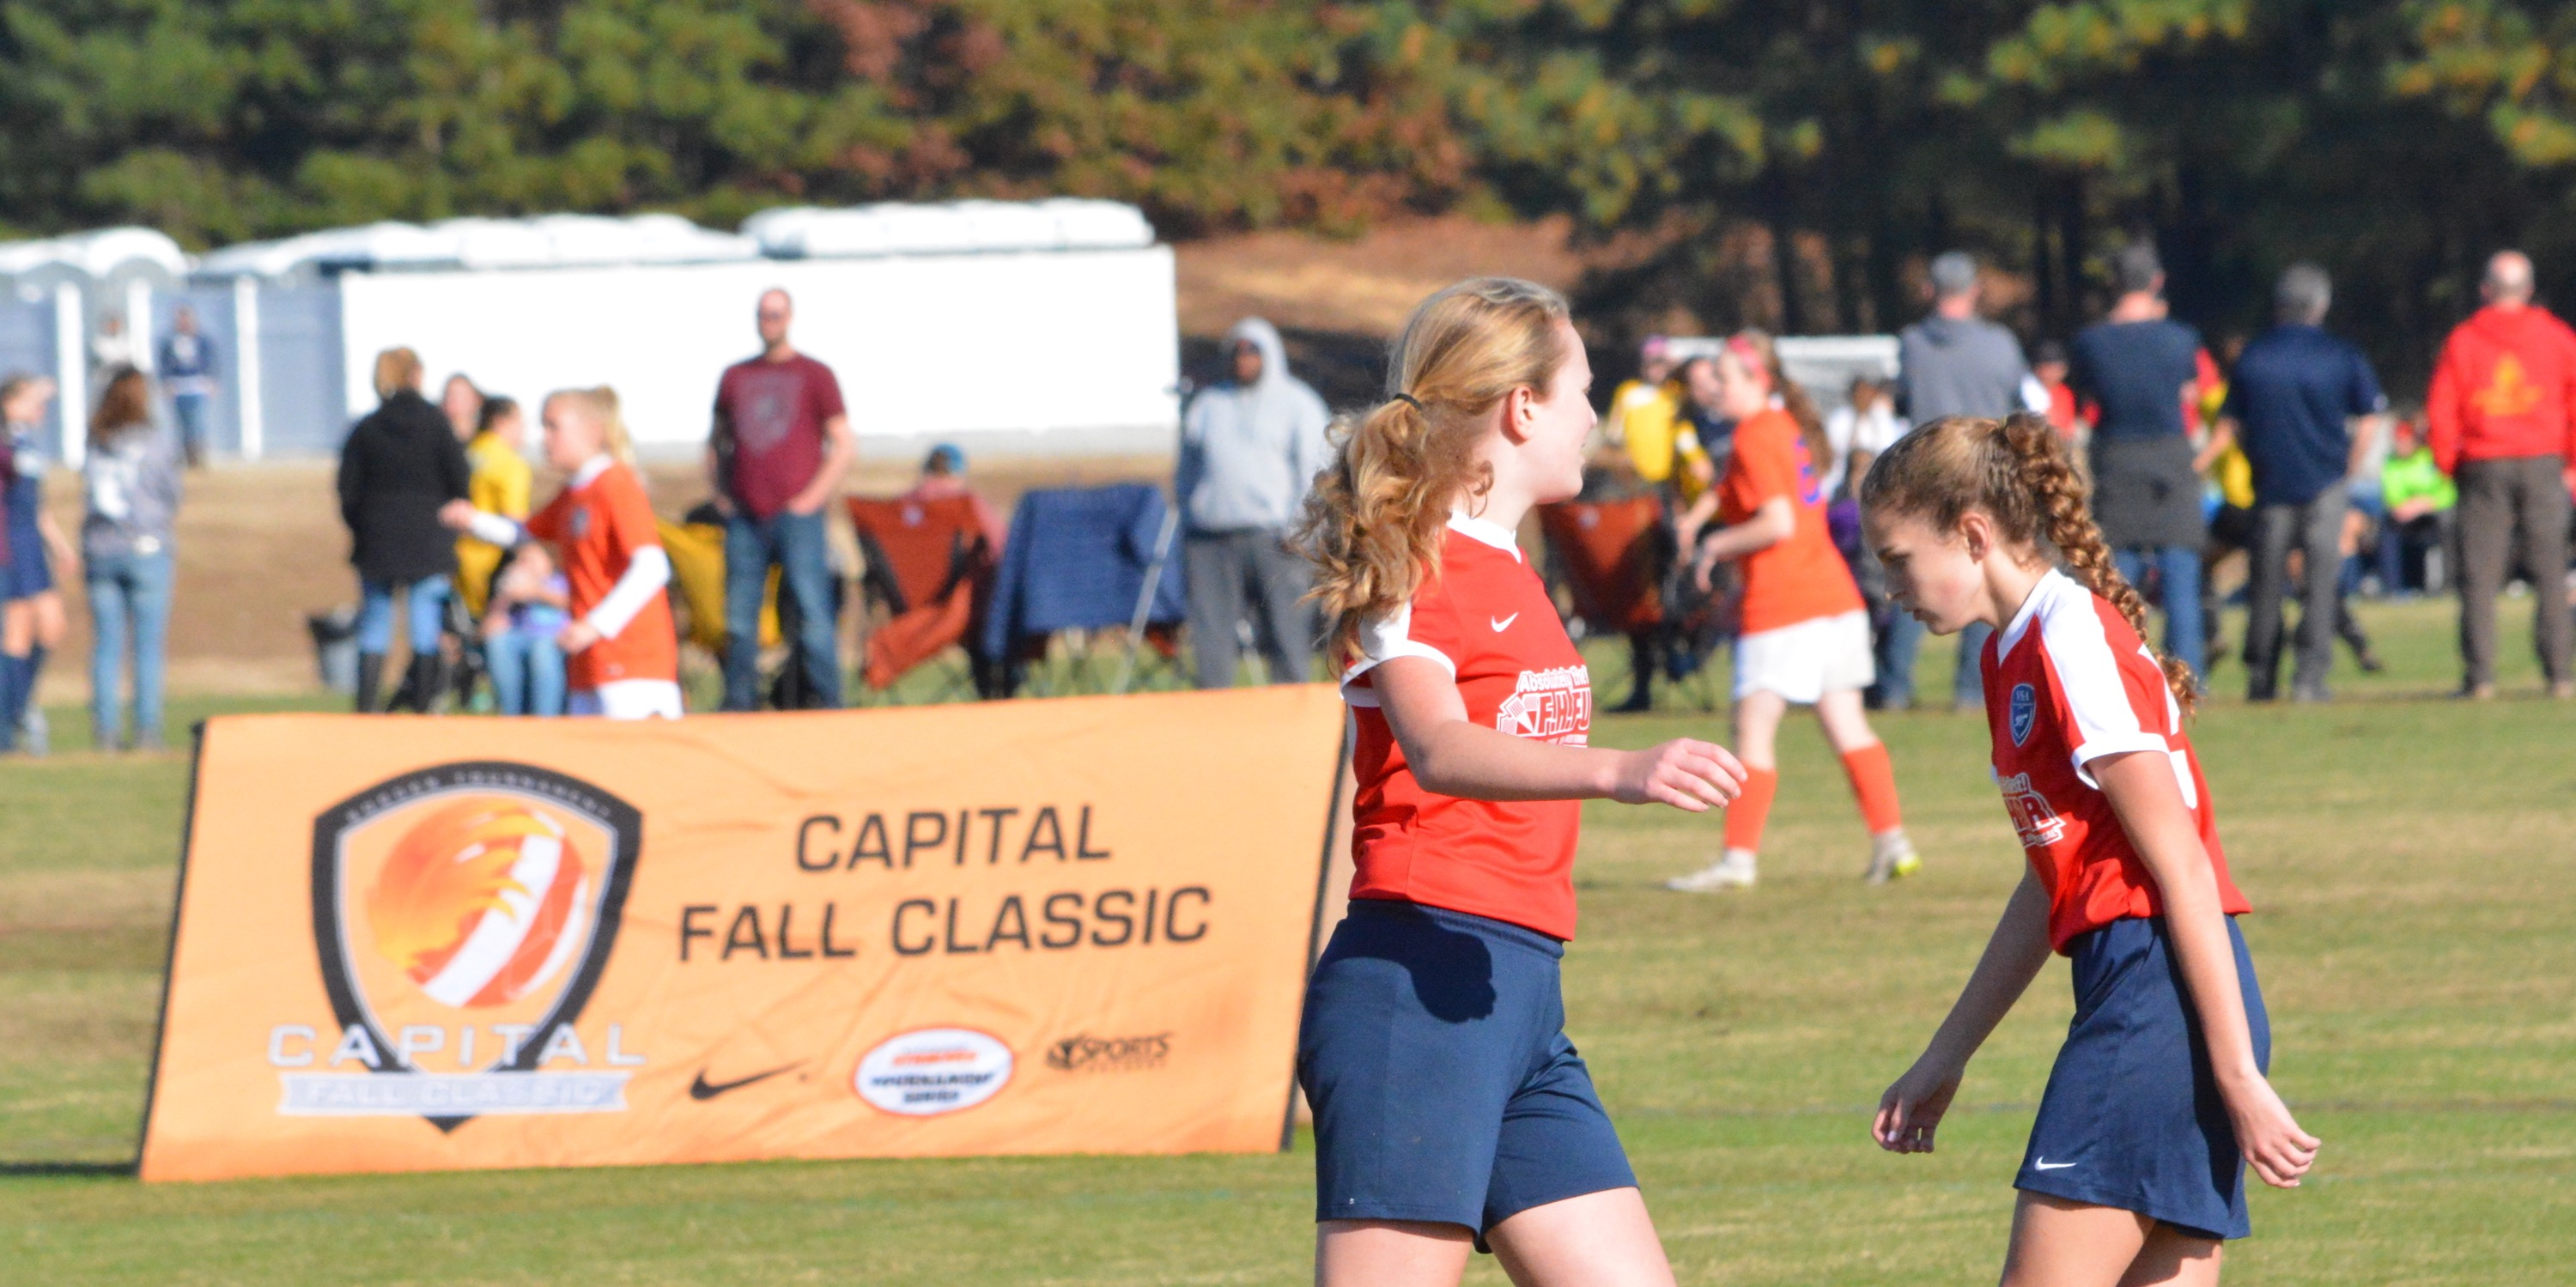 Over 650 teams competing in 2019 Capital Fall Classic